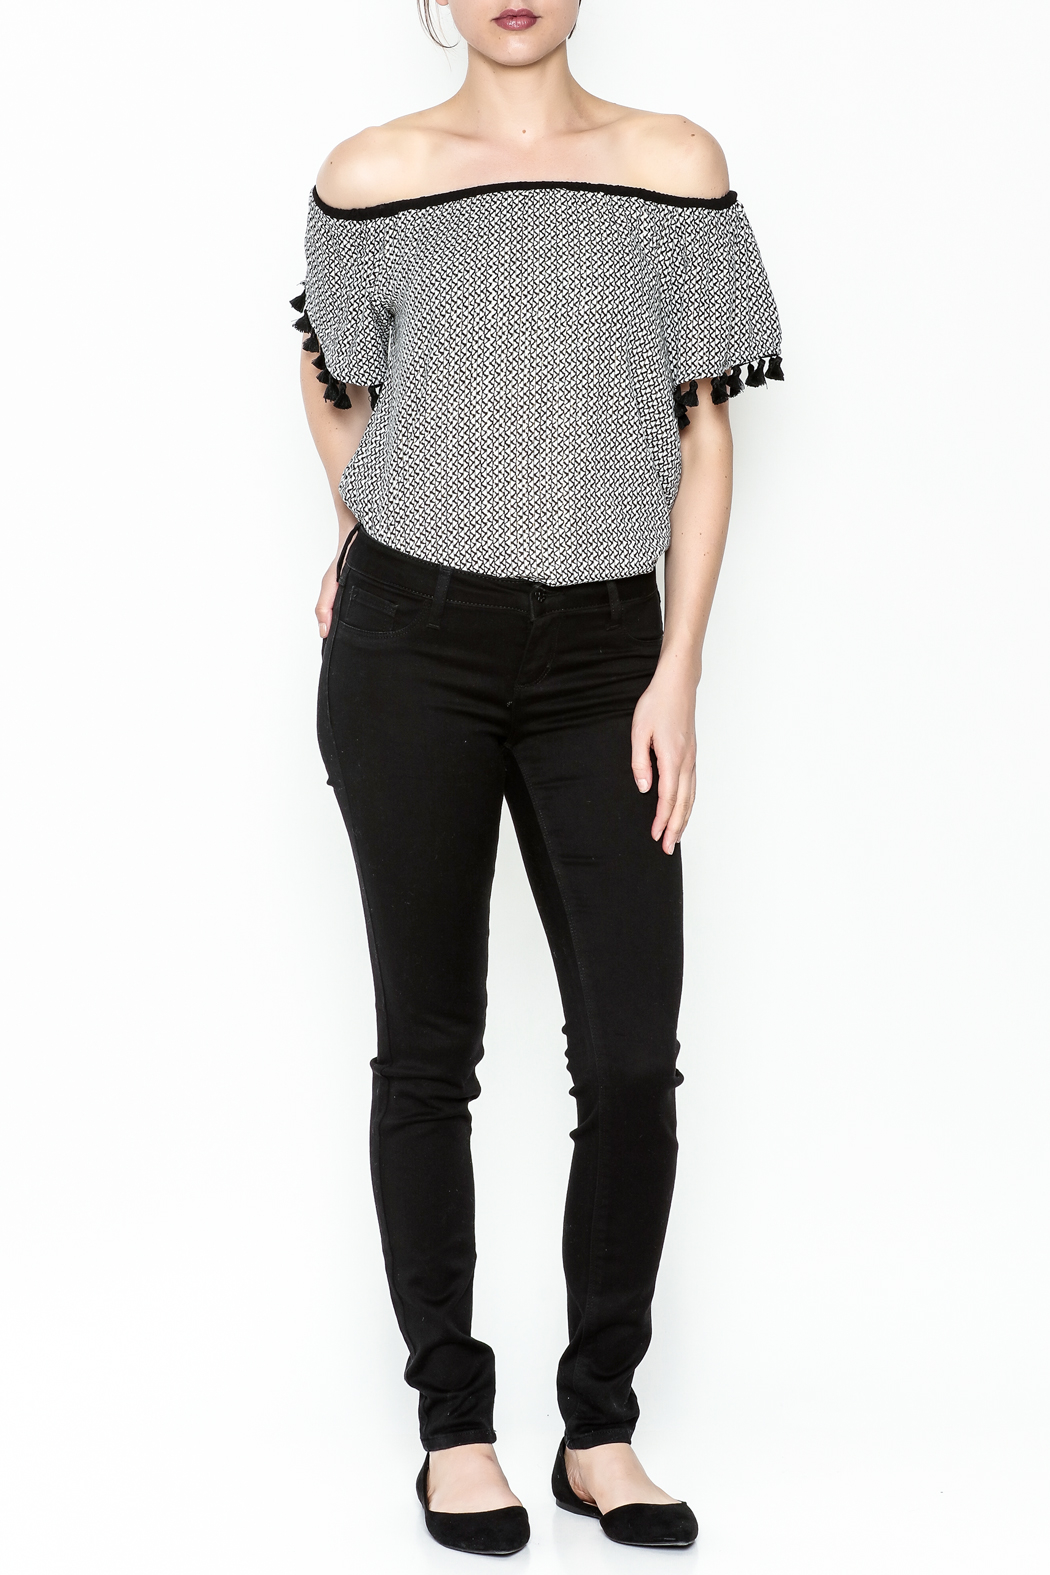 Polly & Esther Black Jeans - Side Cropped Image